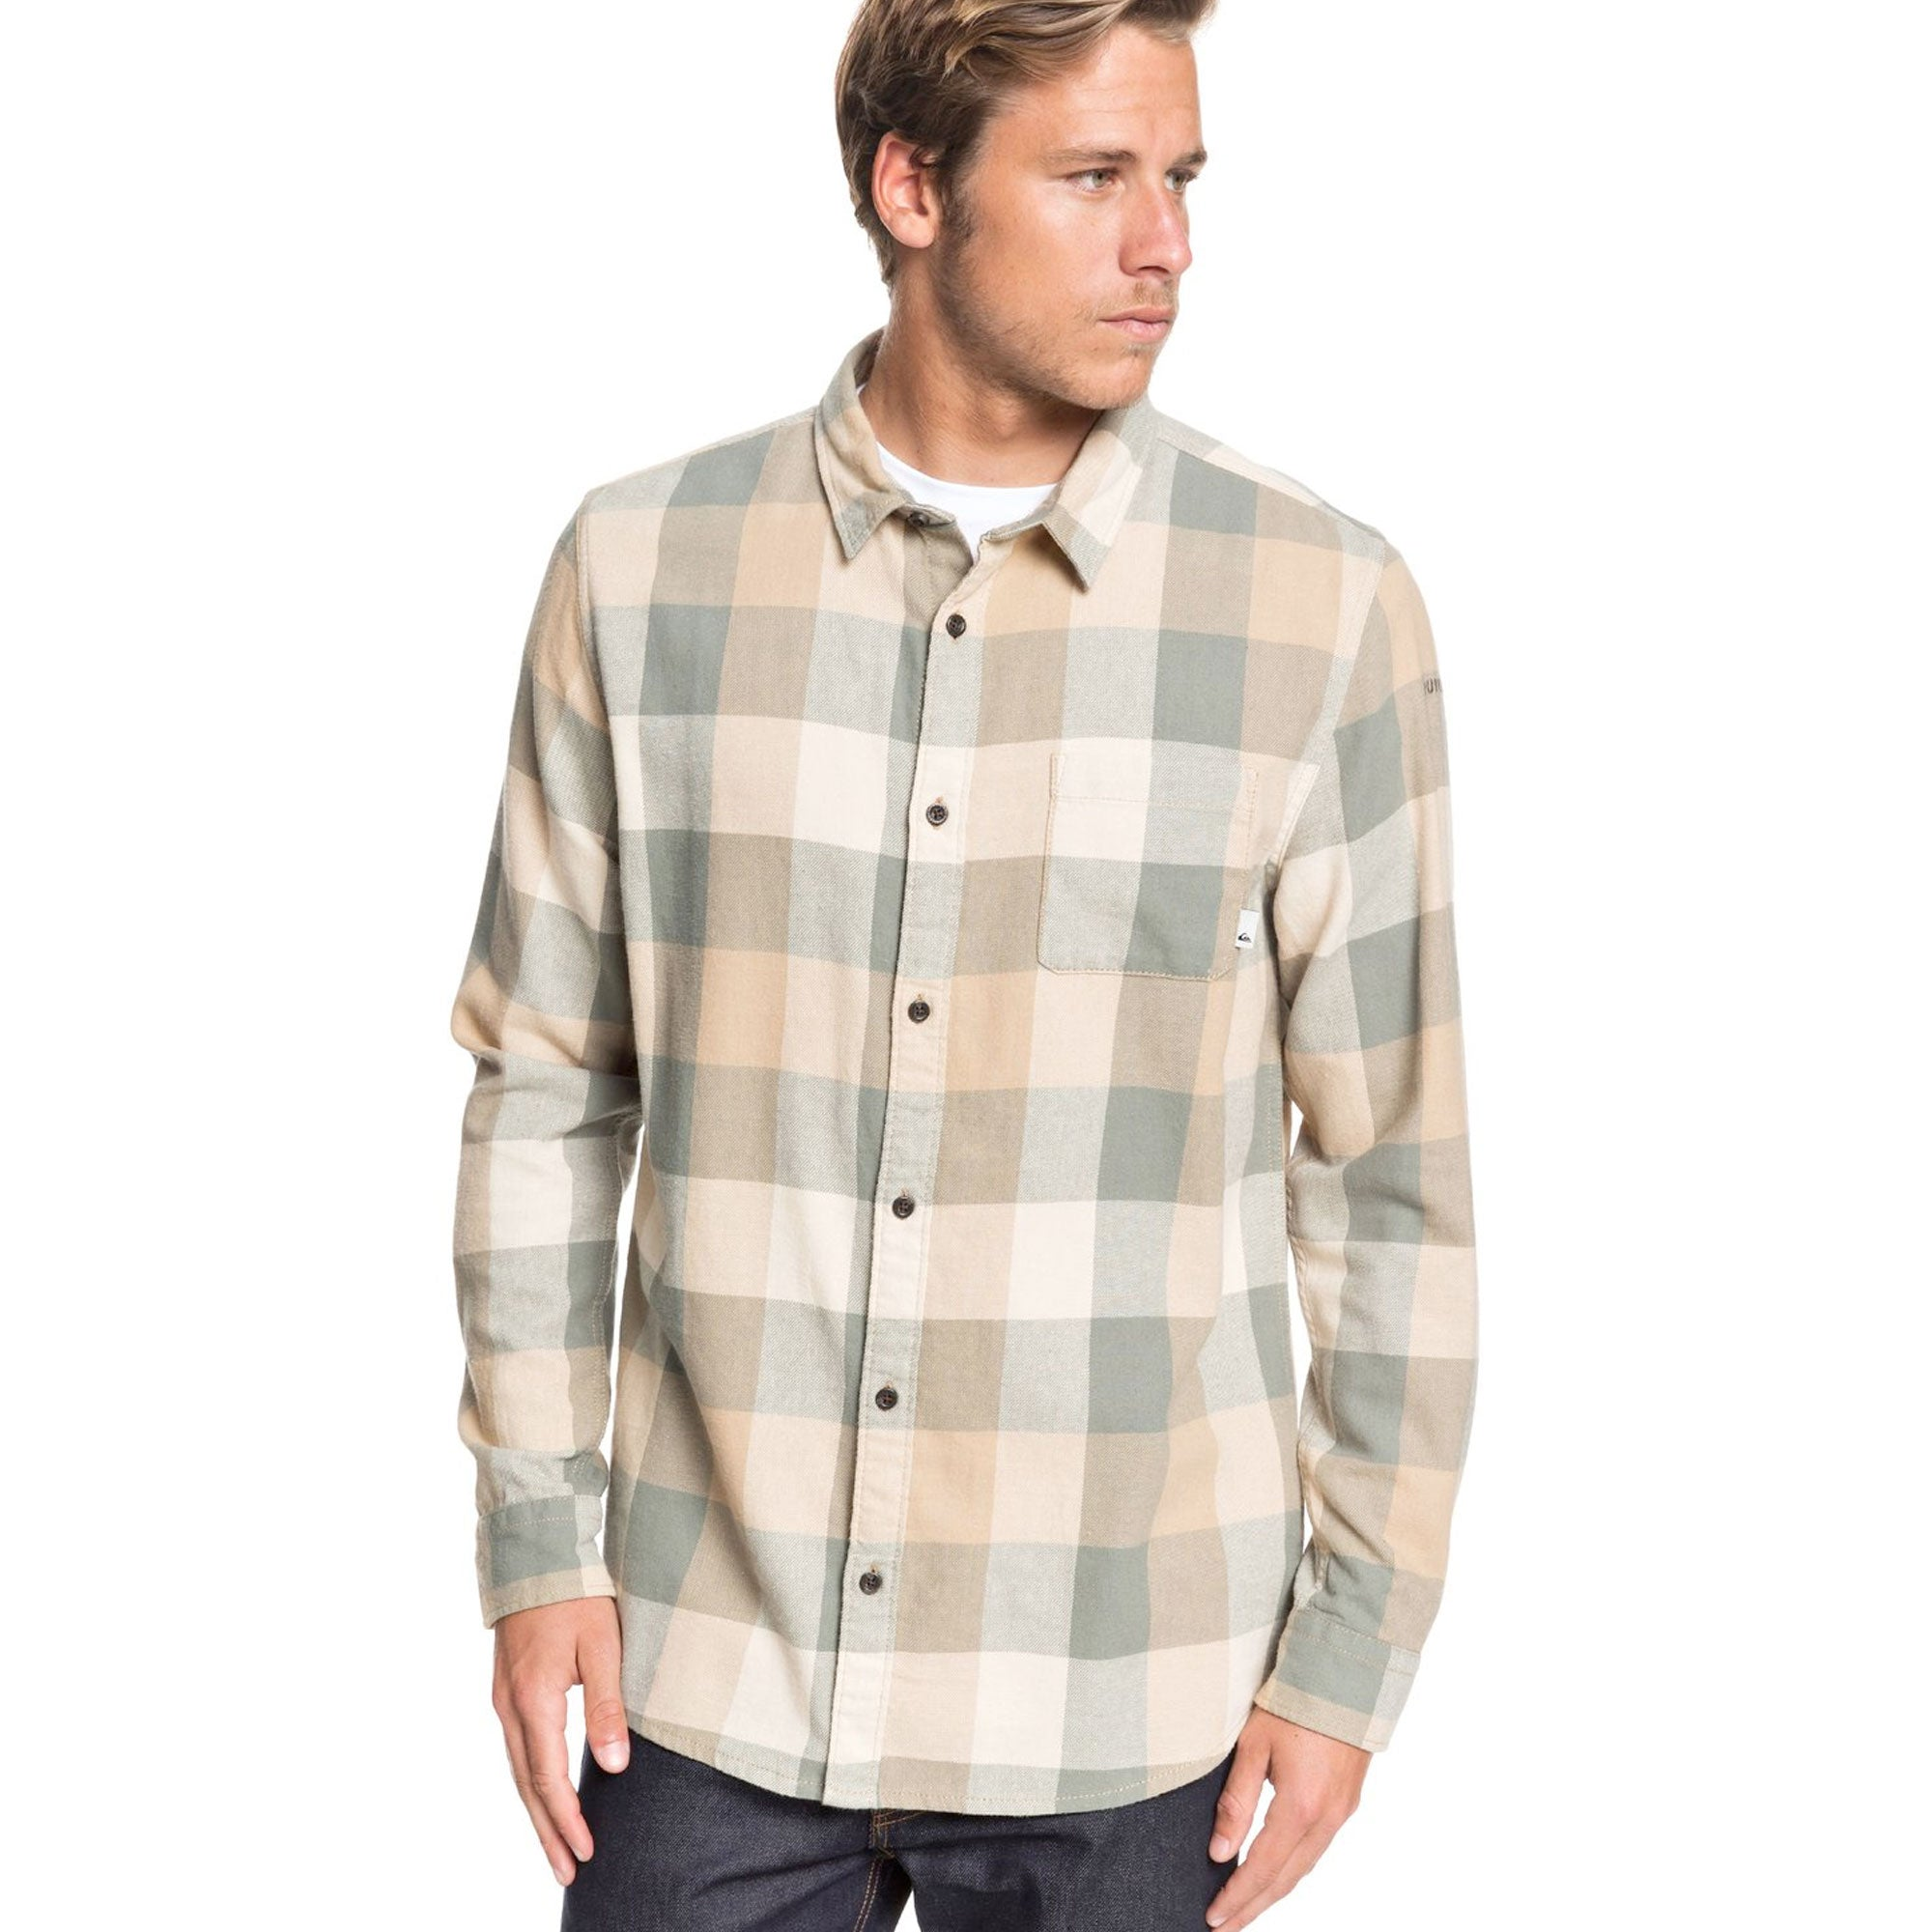 Quiksilver Motherfly Men's L/S Flannel Shirt